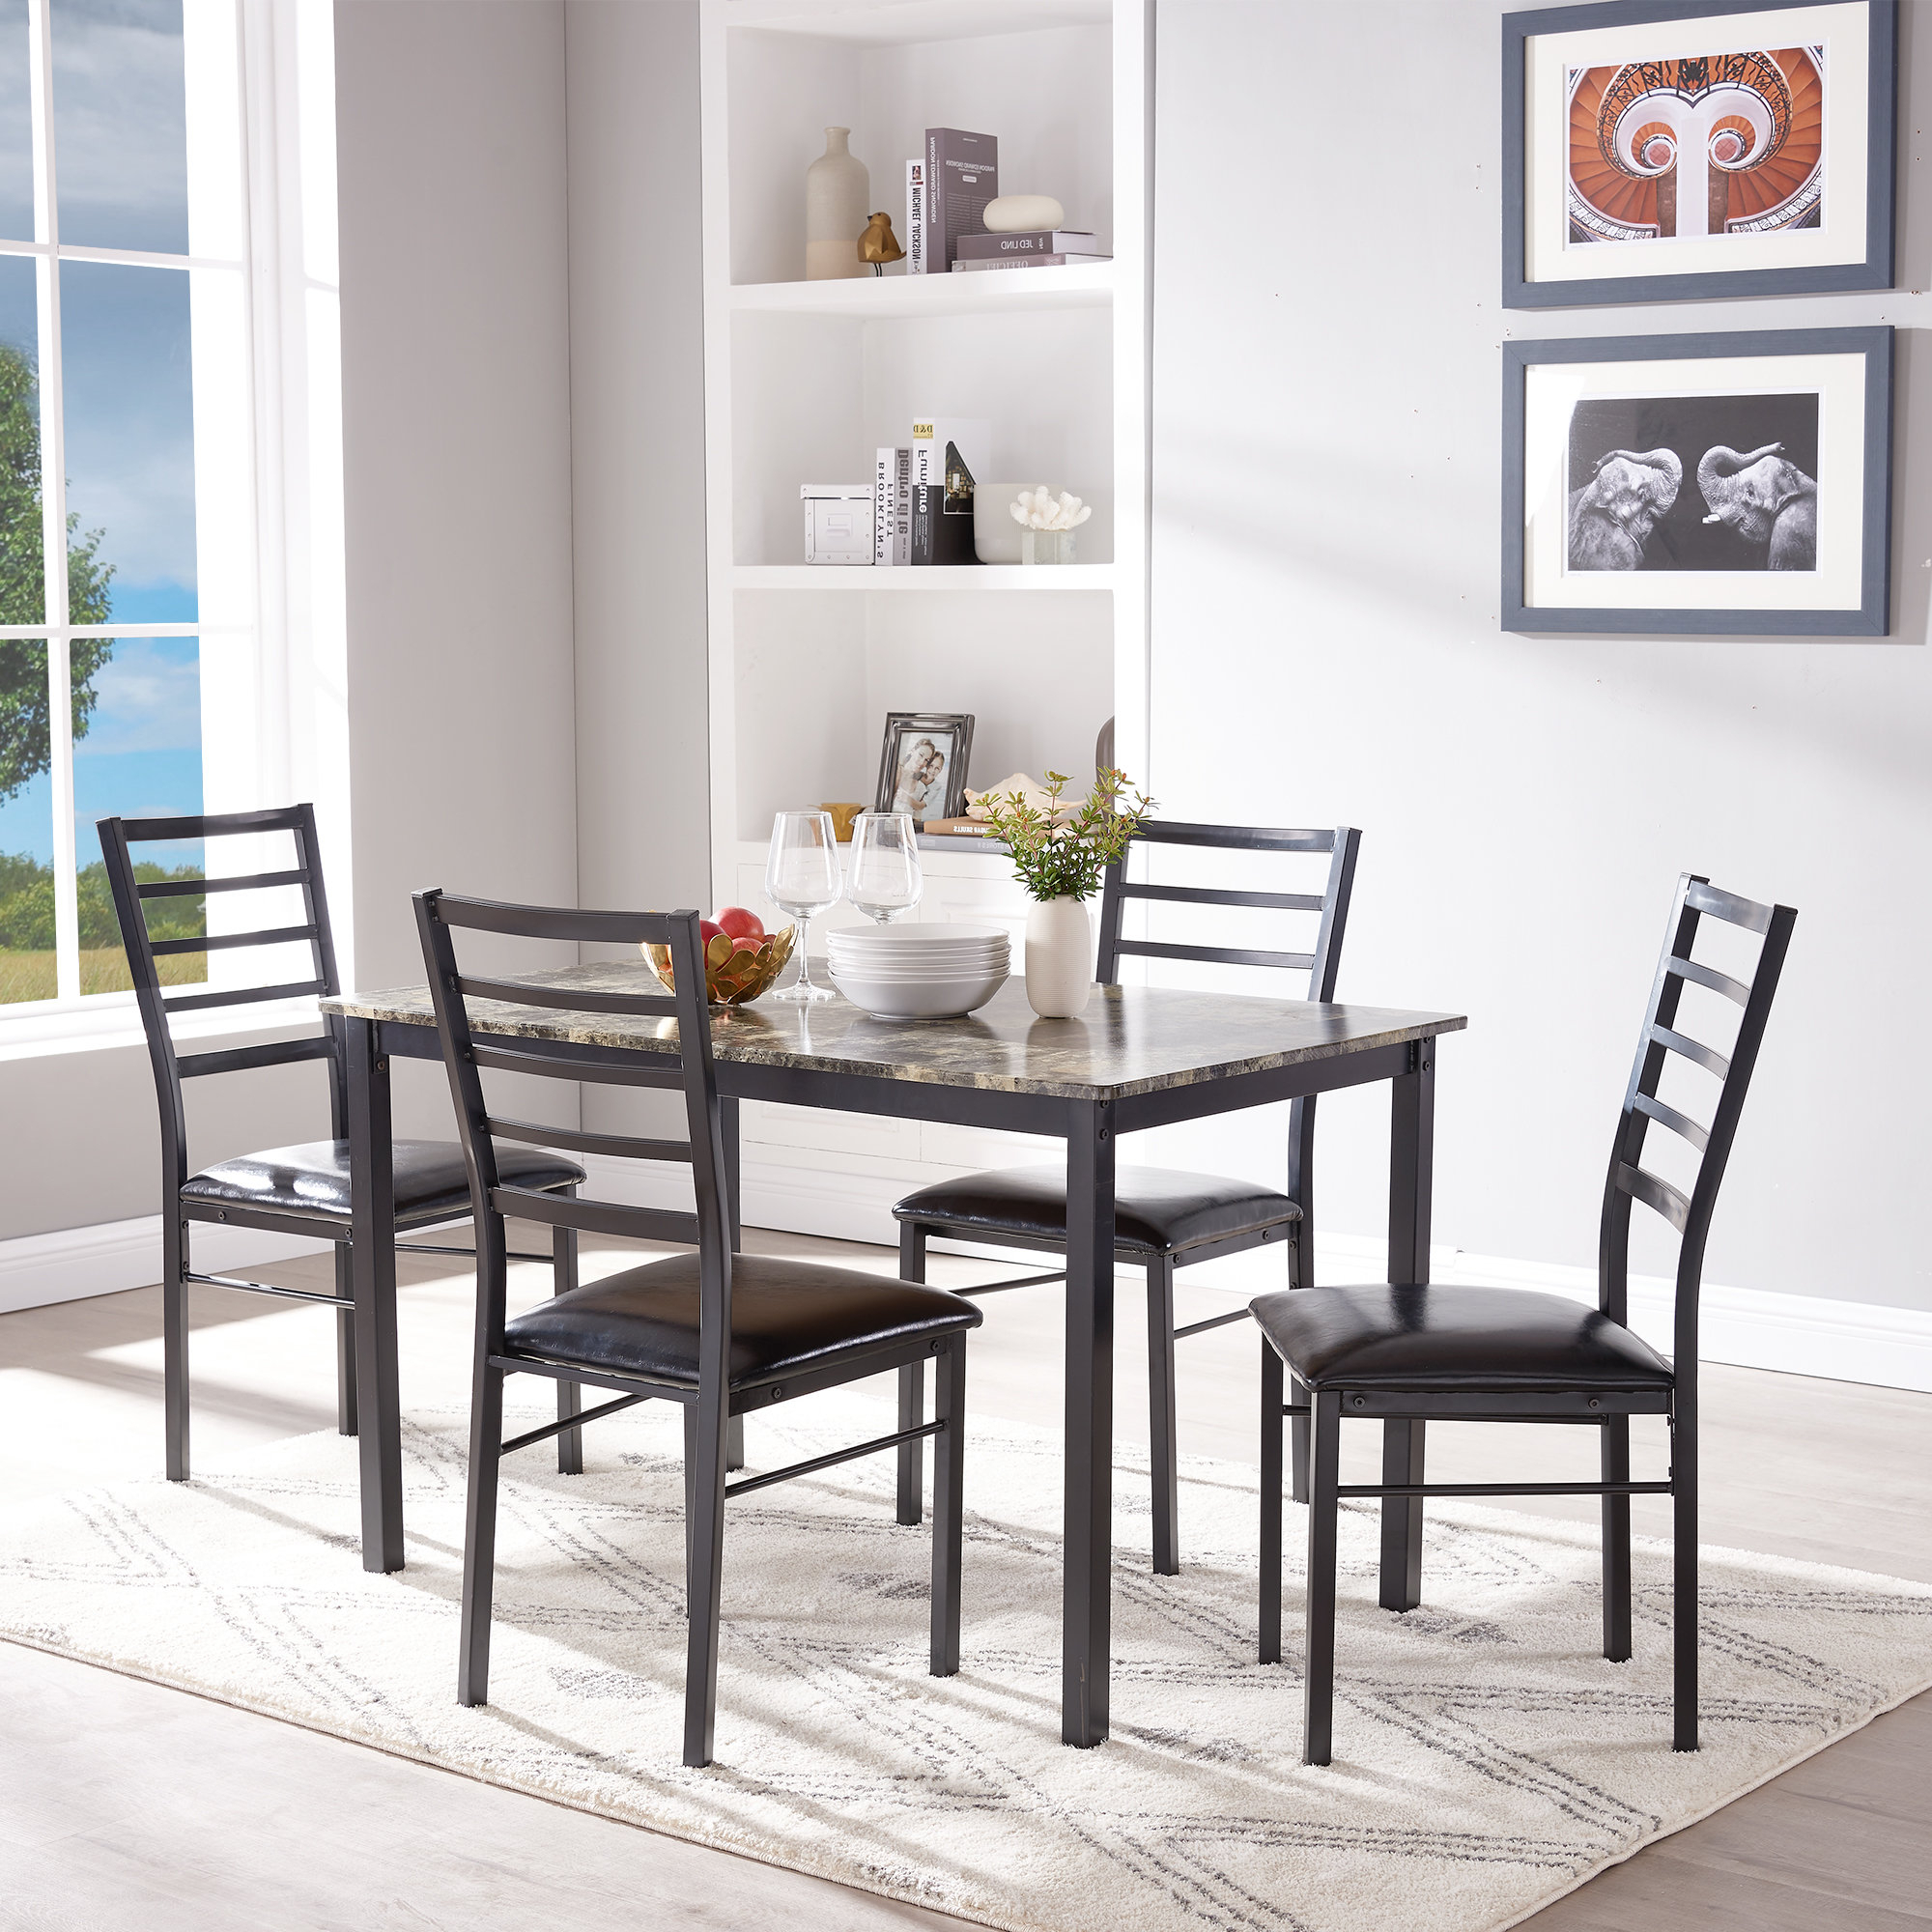 Taulbee 5 Piece Dining Sets Throughout Well Known Mukai 5 Piece Dining Set (View 17 of 20)